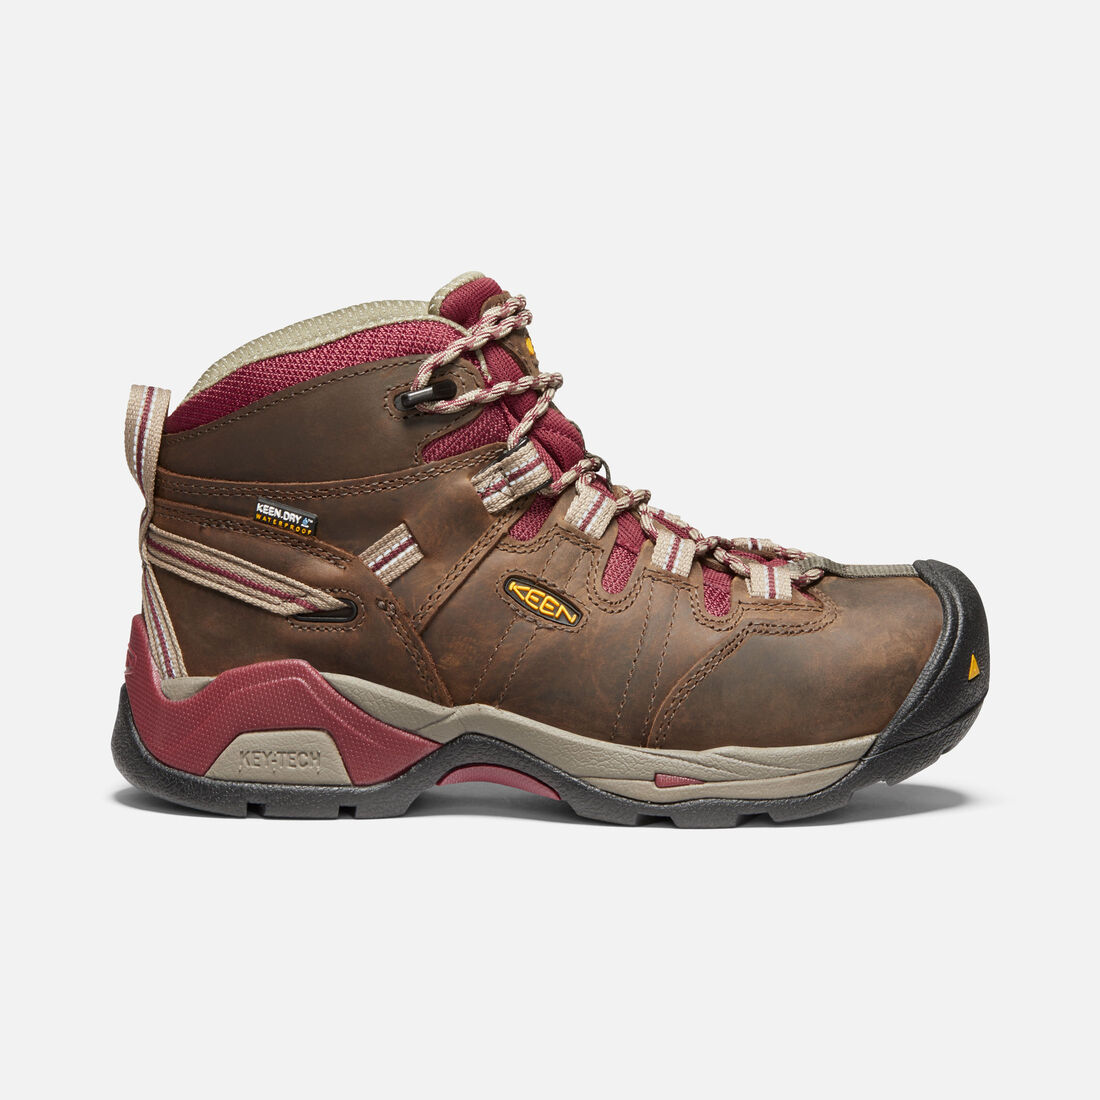 055bd2a859db Women s Detroit XT Waterproof Boot (Steel Toe) in BLACK OLIVE TAWNY RED -